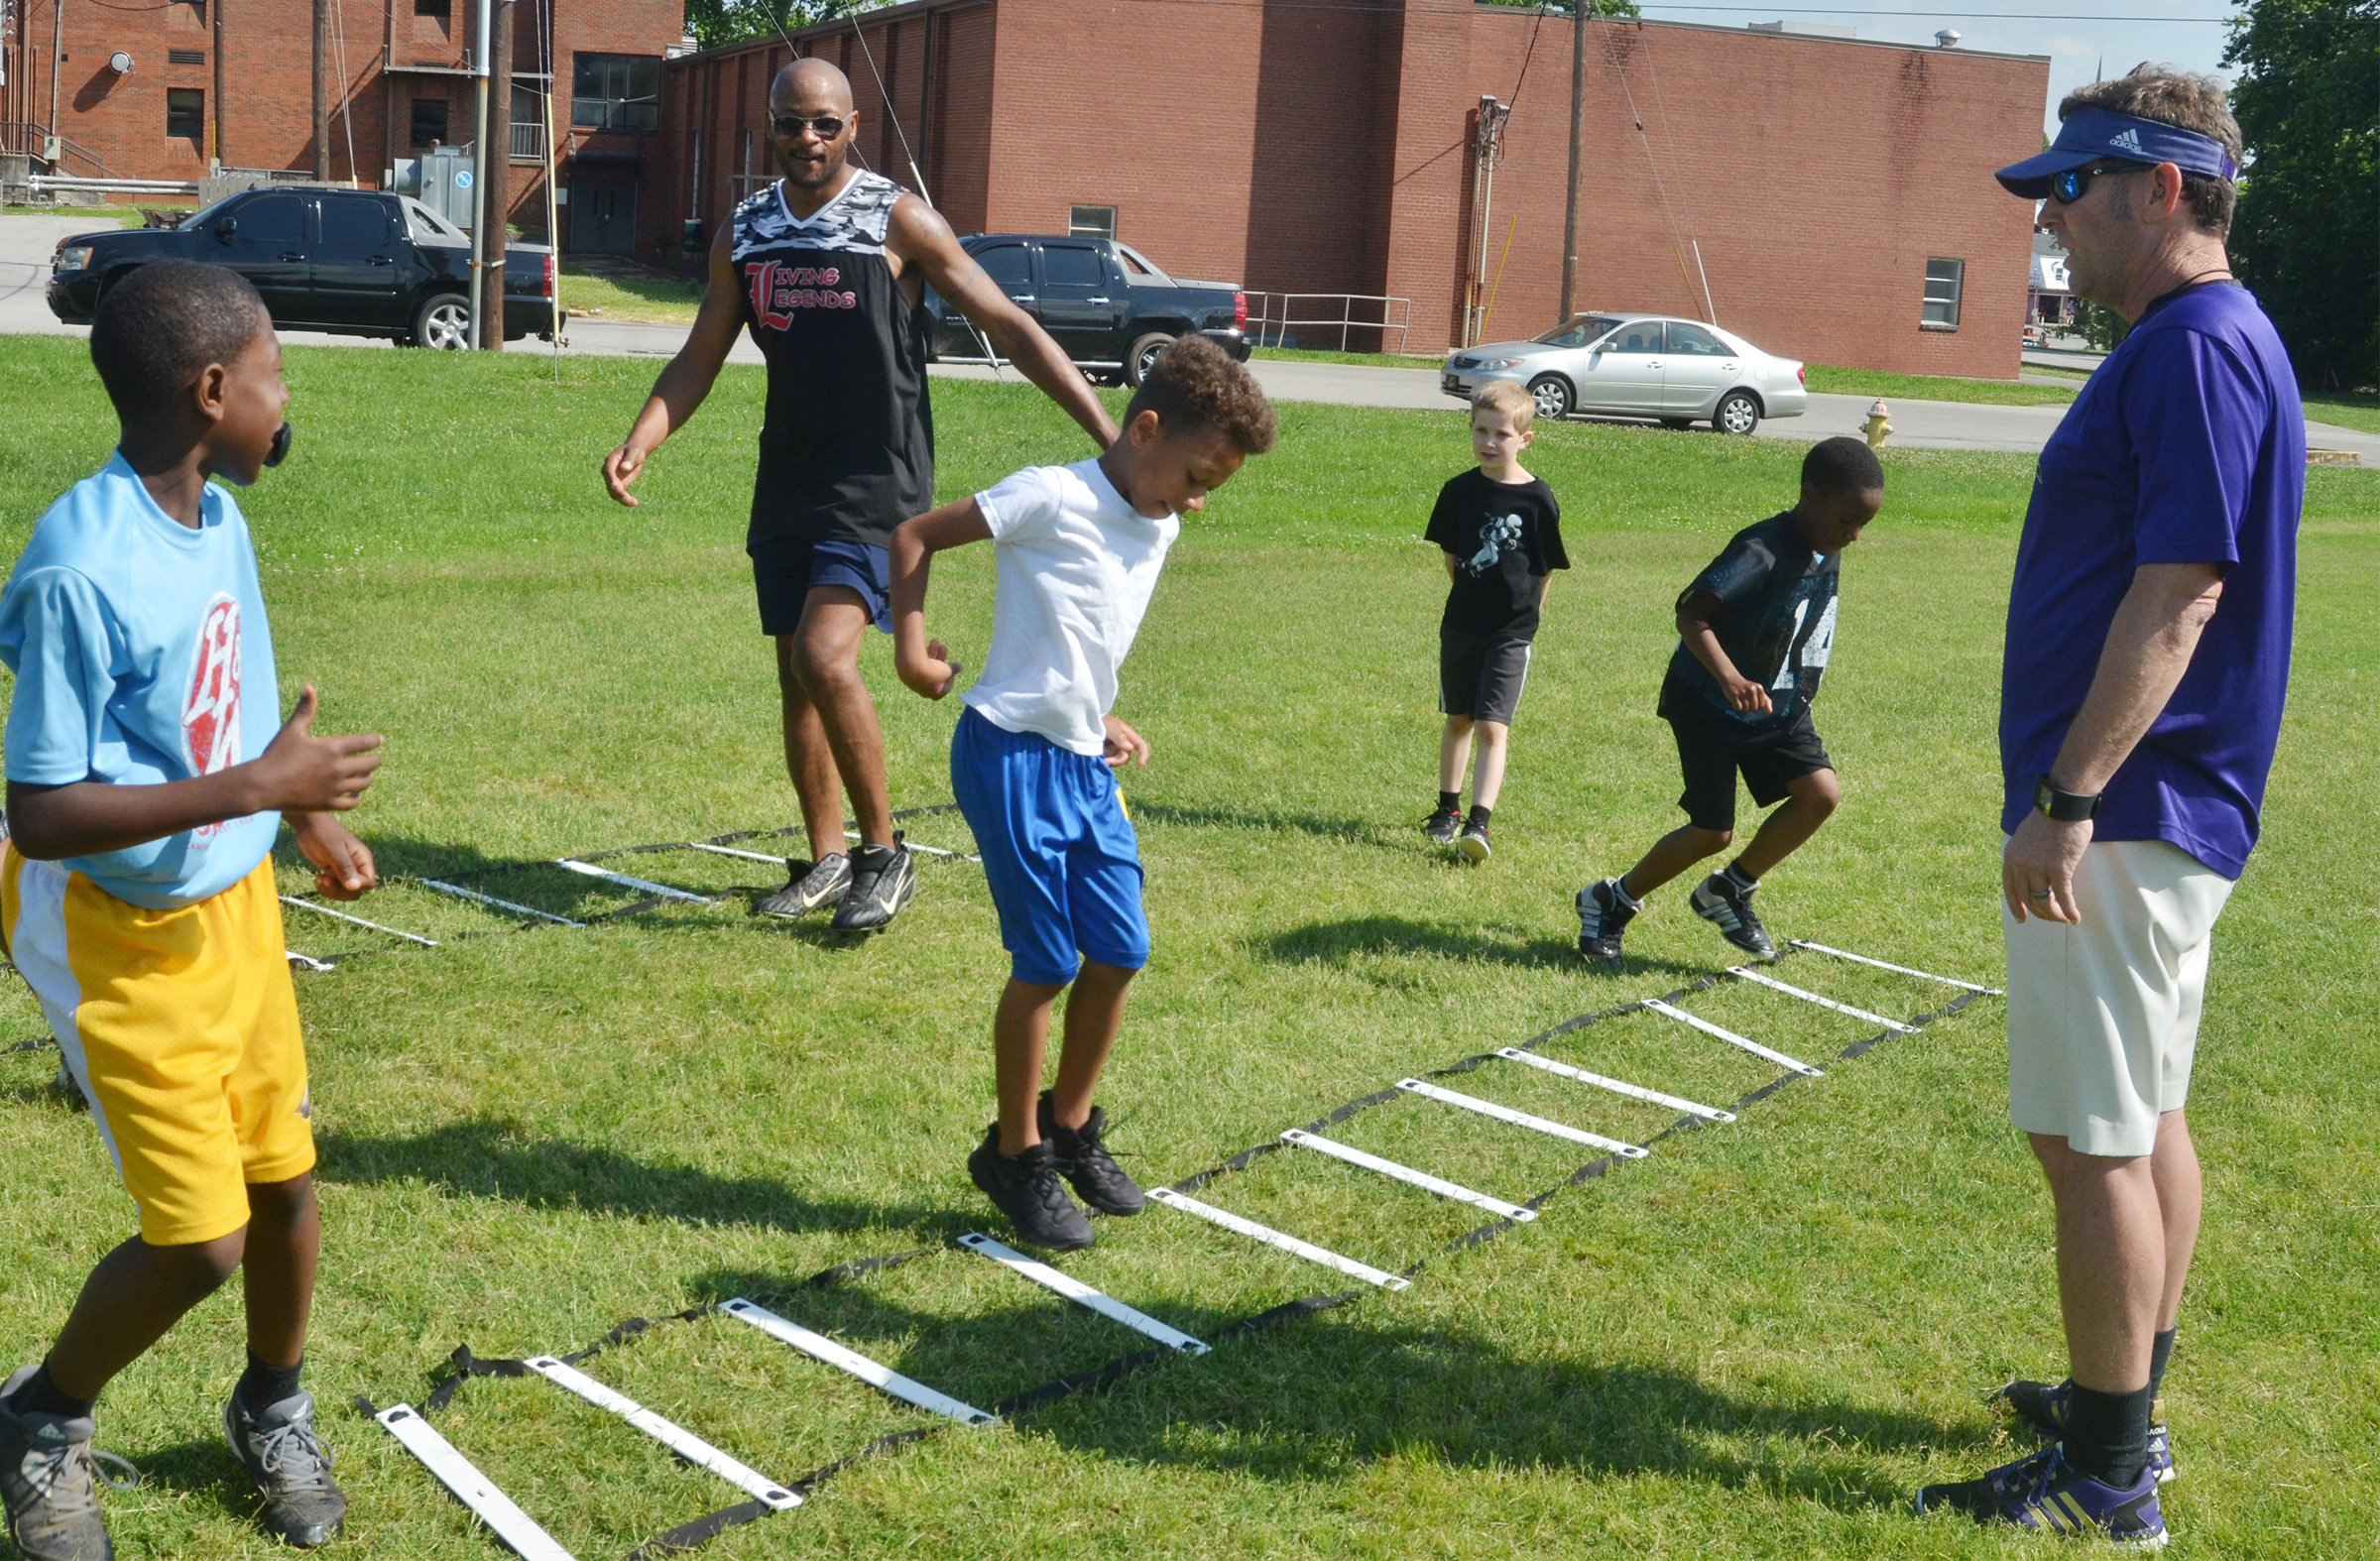 Former NFL player Tony Driver, at left, and assistant coach Herb Wiseman work with campers on a drill.